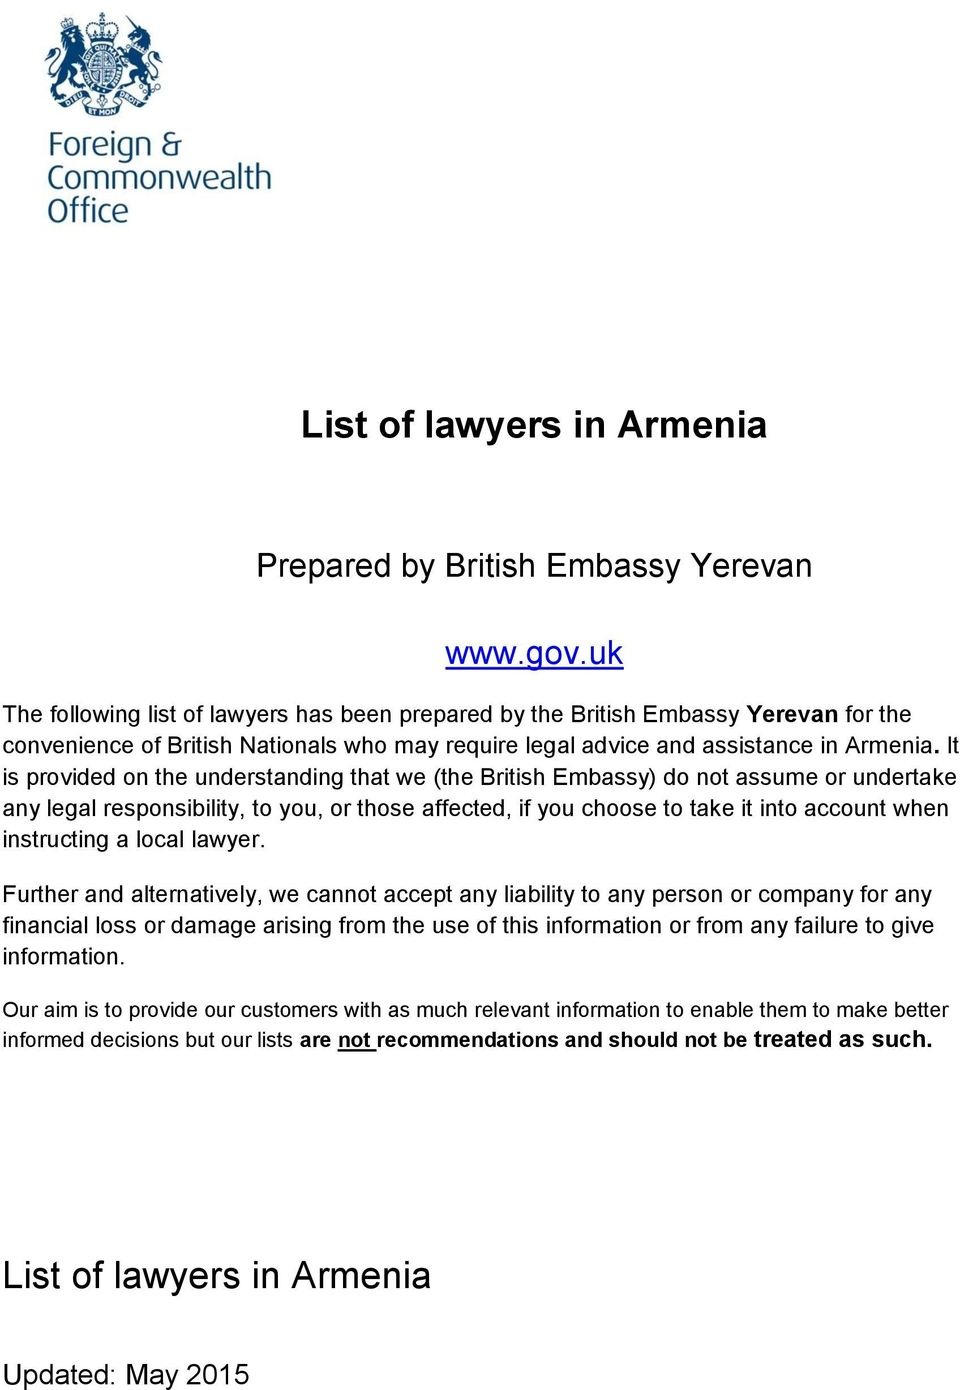 It is provided on the understanding that we (the British Embassy) do not assume or undertake any legal responsibility, to you, or those affected, if you choose to take it into account when